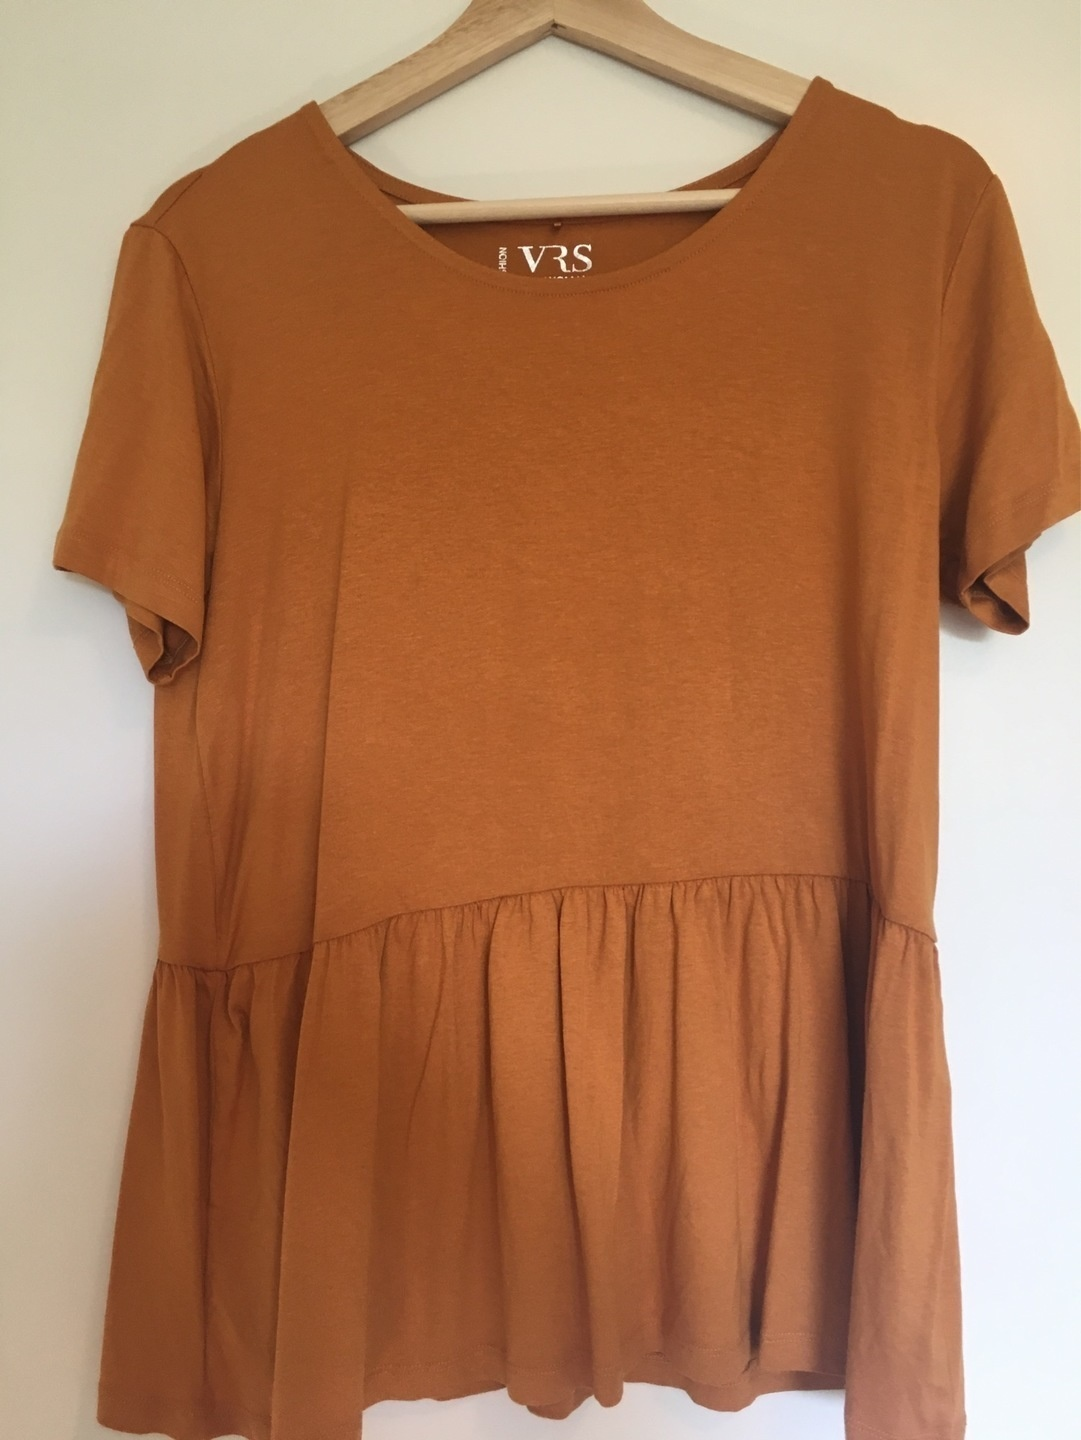 Women's tops & t-shirts - VRS photo 1